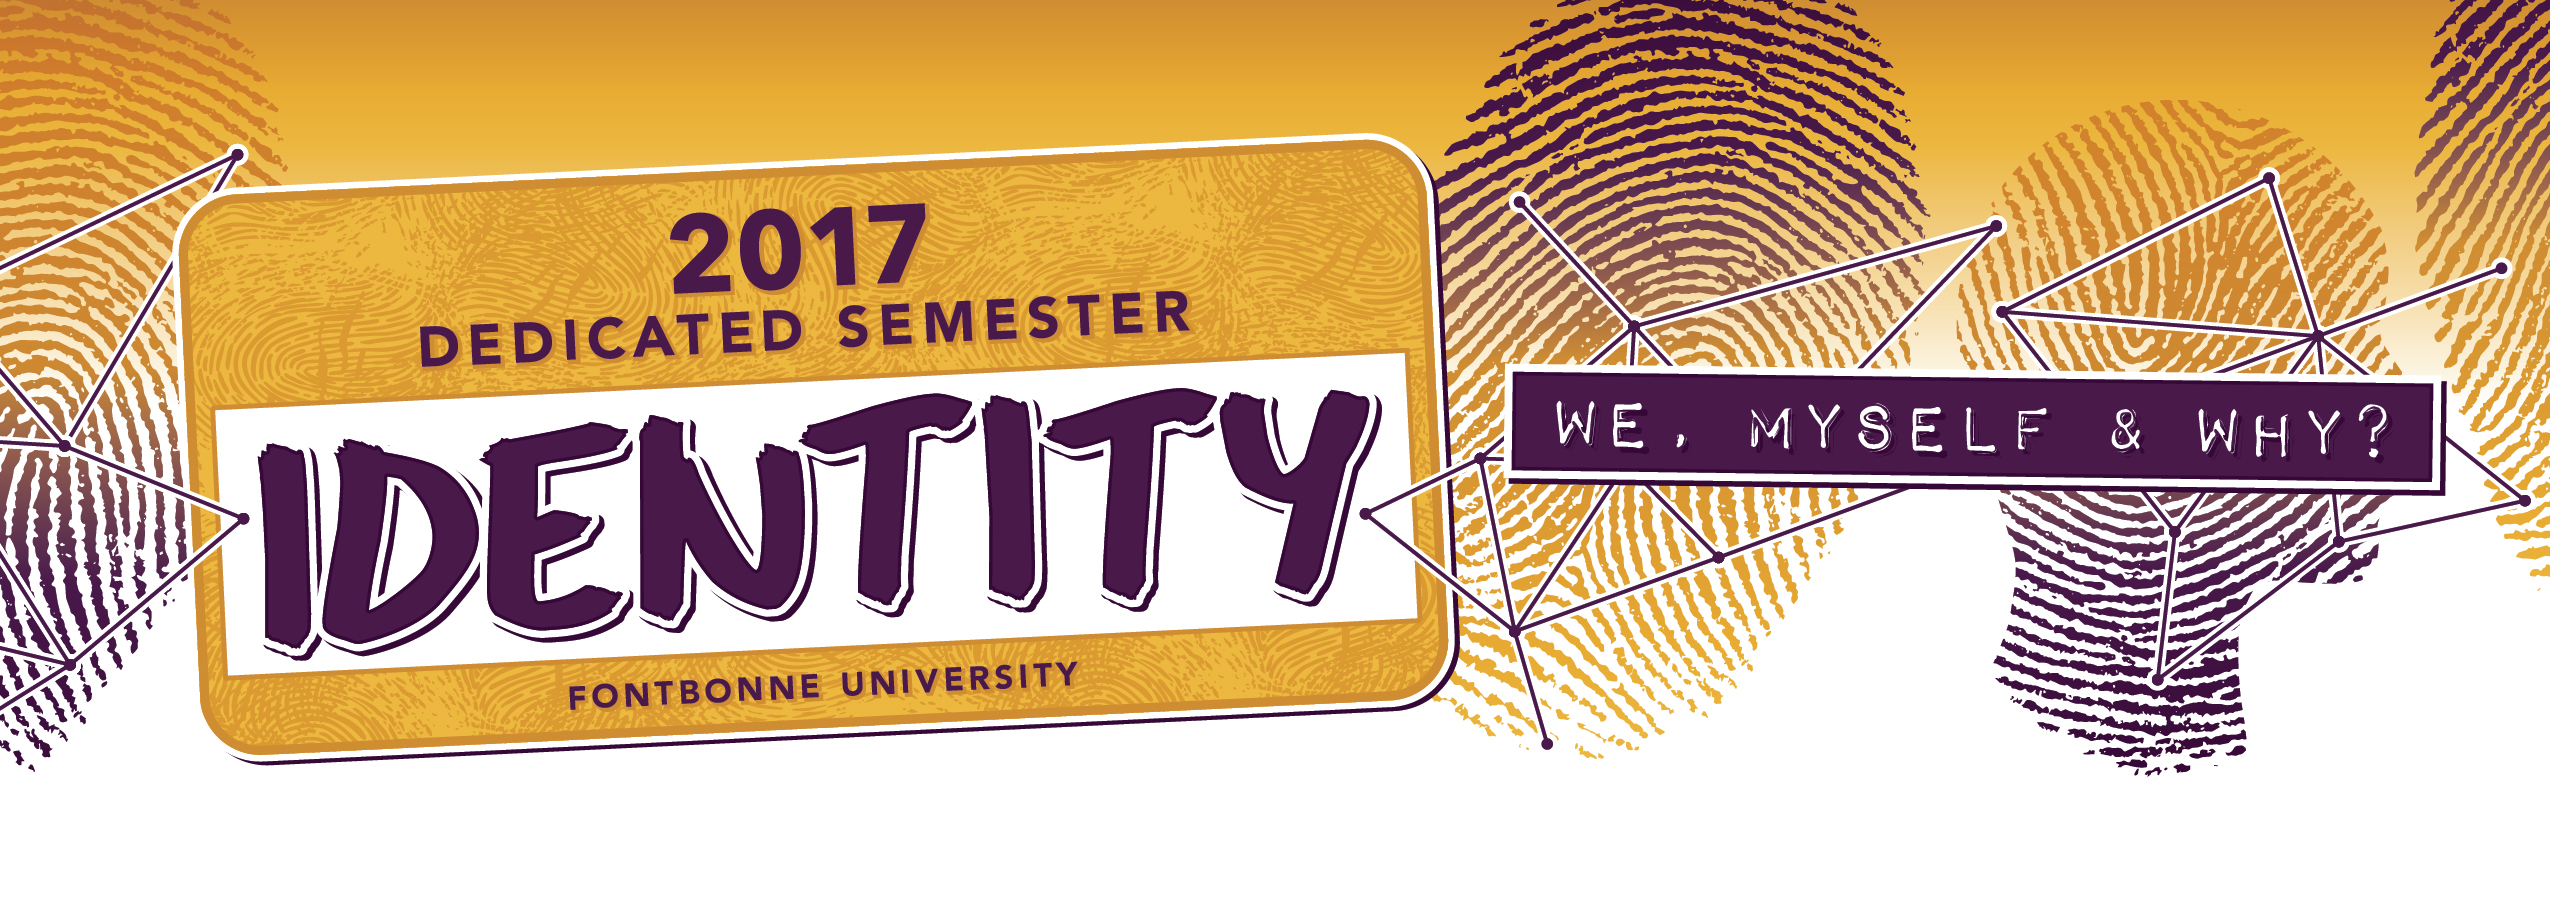 dedicated semester banner logo